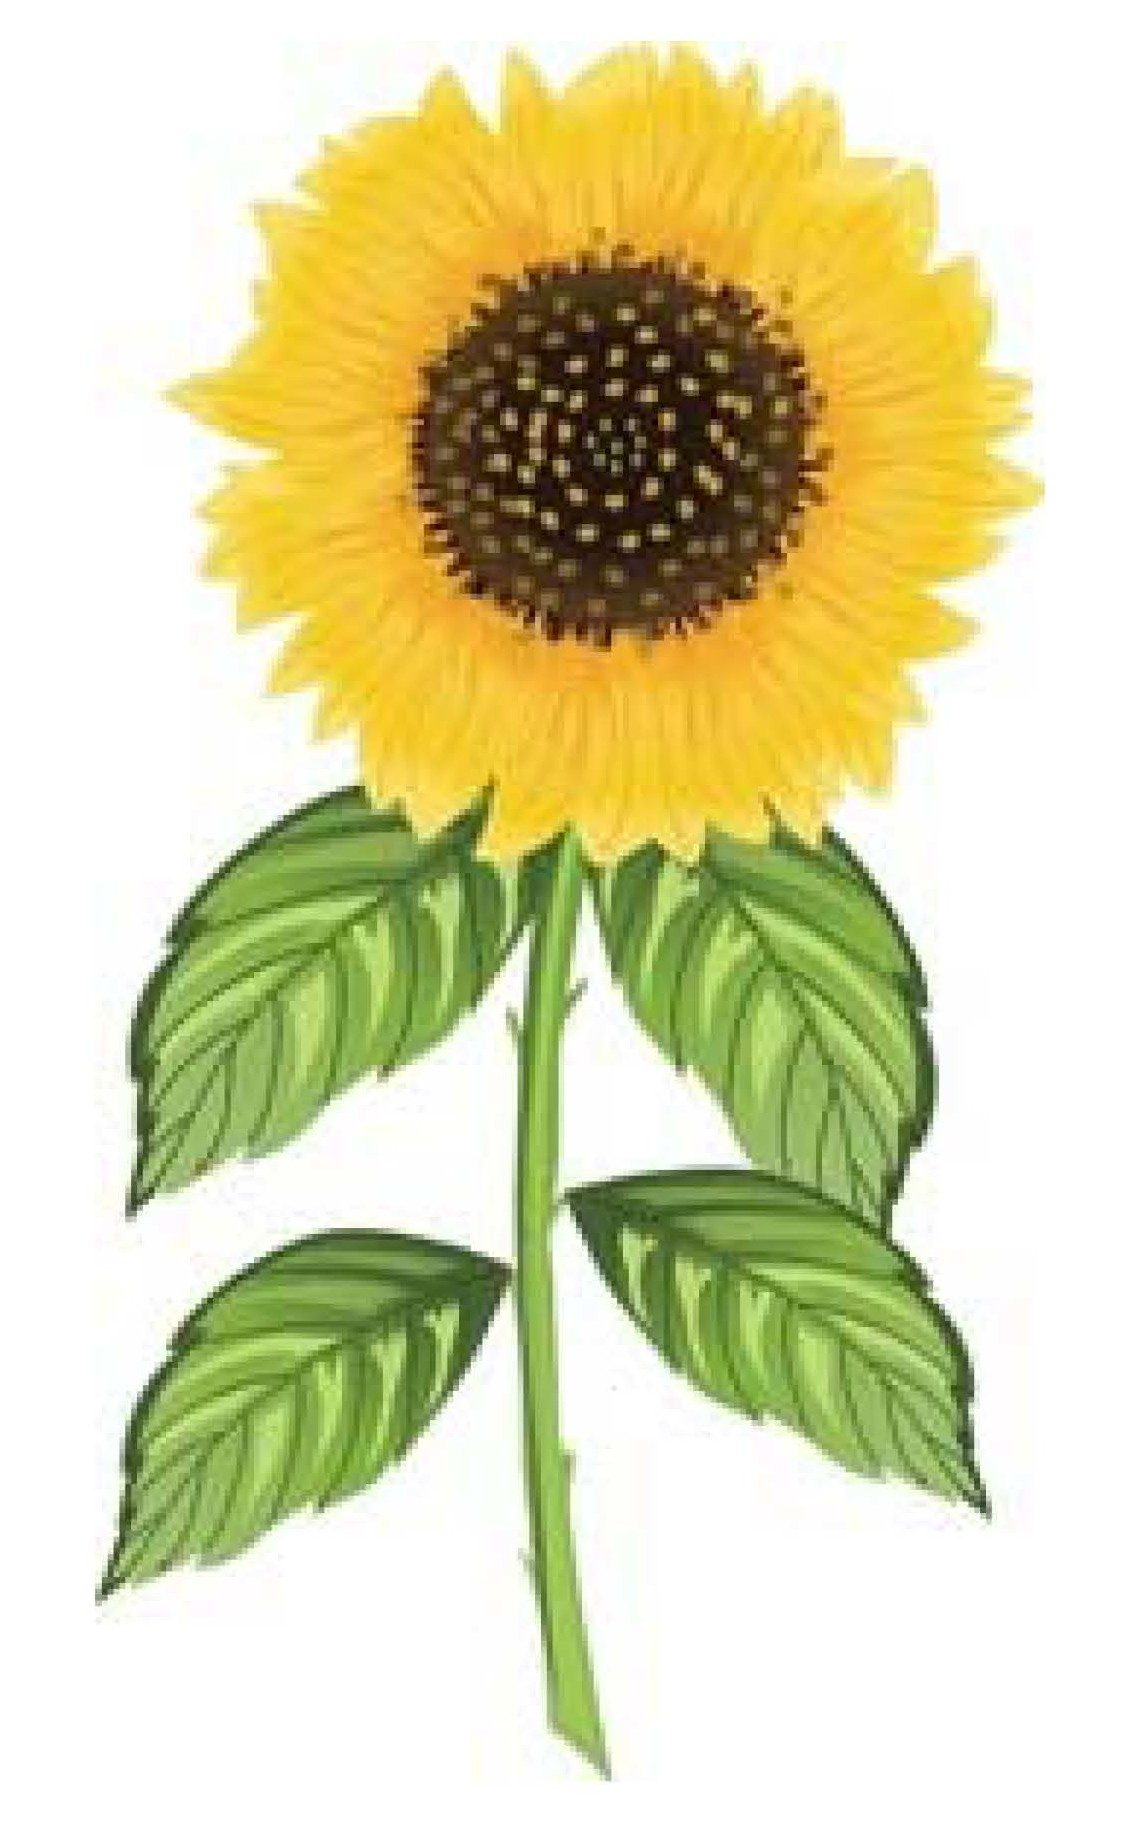 6 Tips to Grow and Harvest Your Sunflower